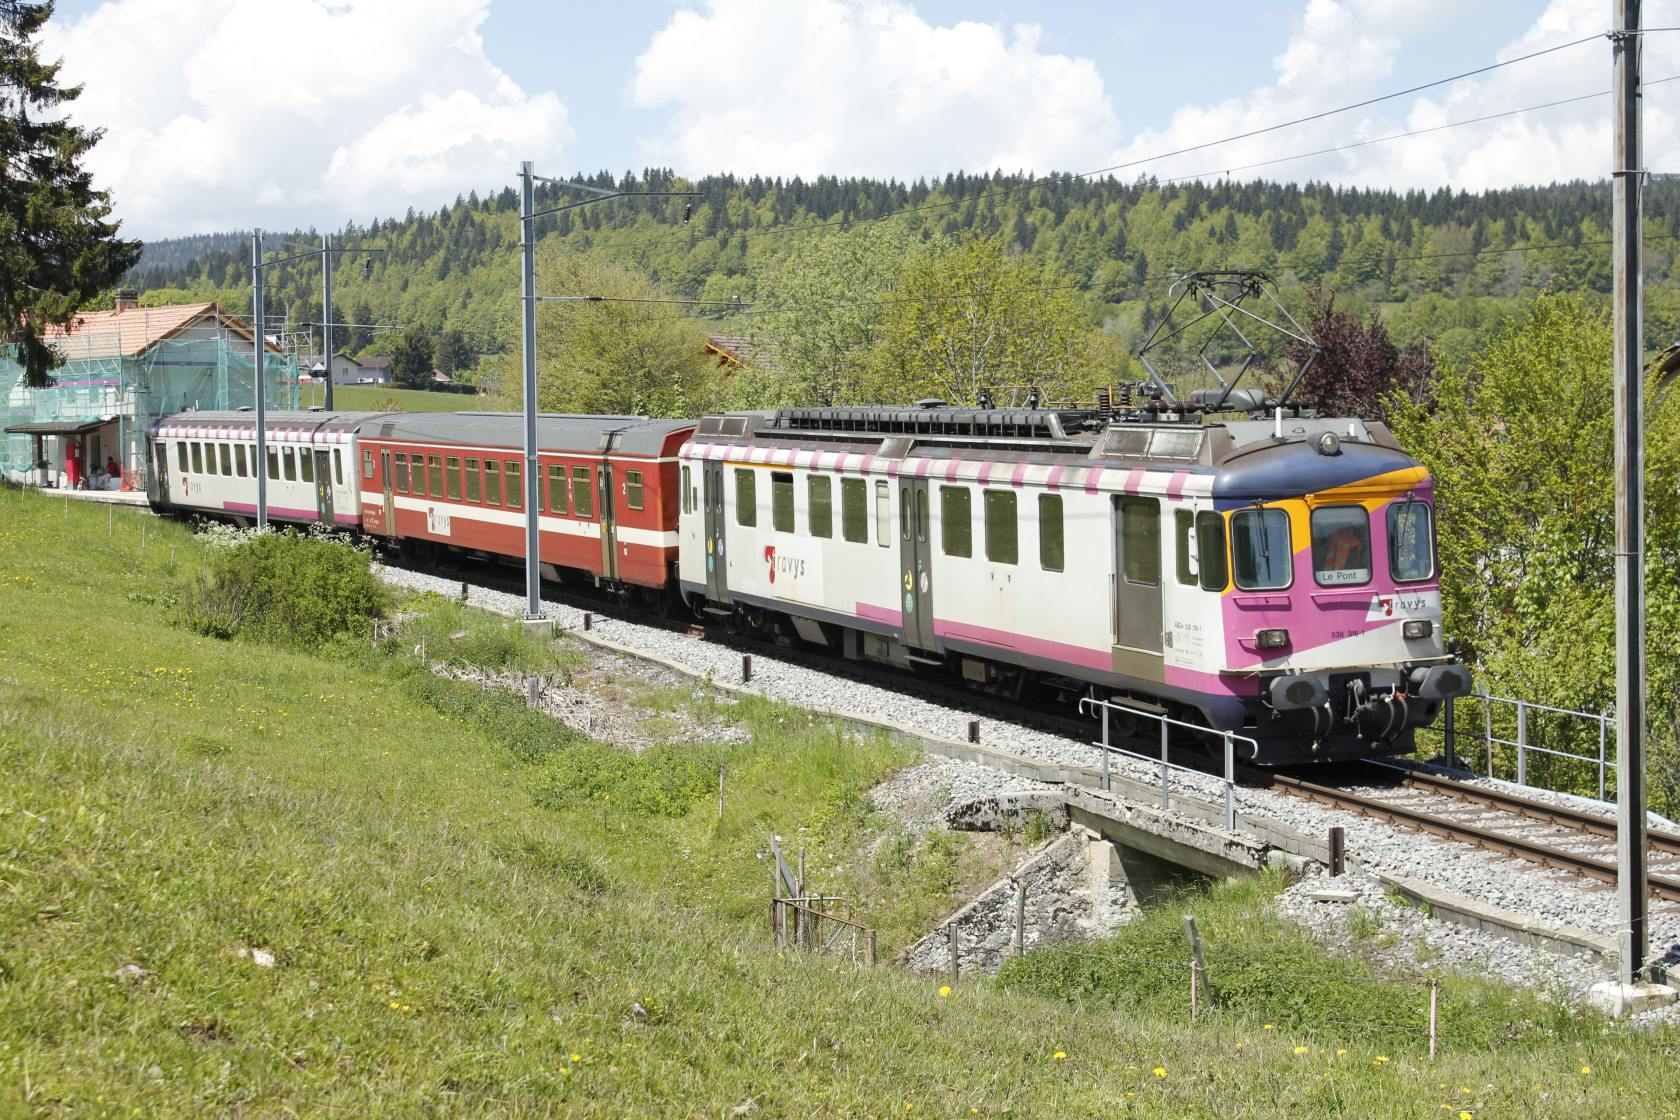 _MG_9570_Travys_ABDe_538_316_1_Train_des_écoliers_Les_Charbonni+¿res_06-06-2013_NMS.JPG